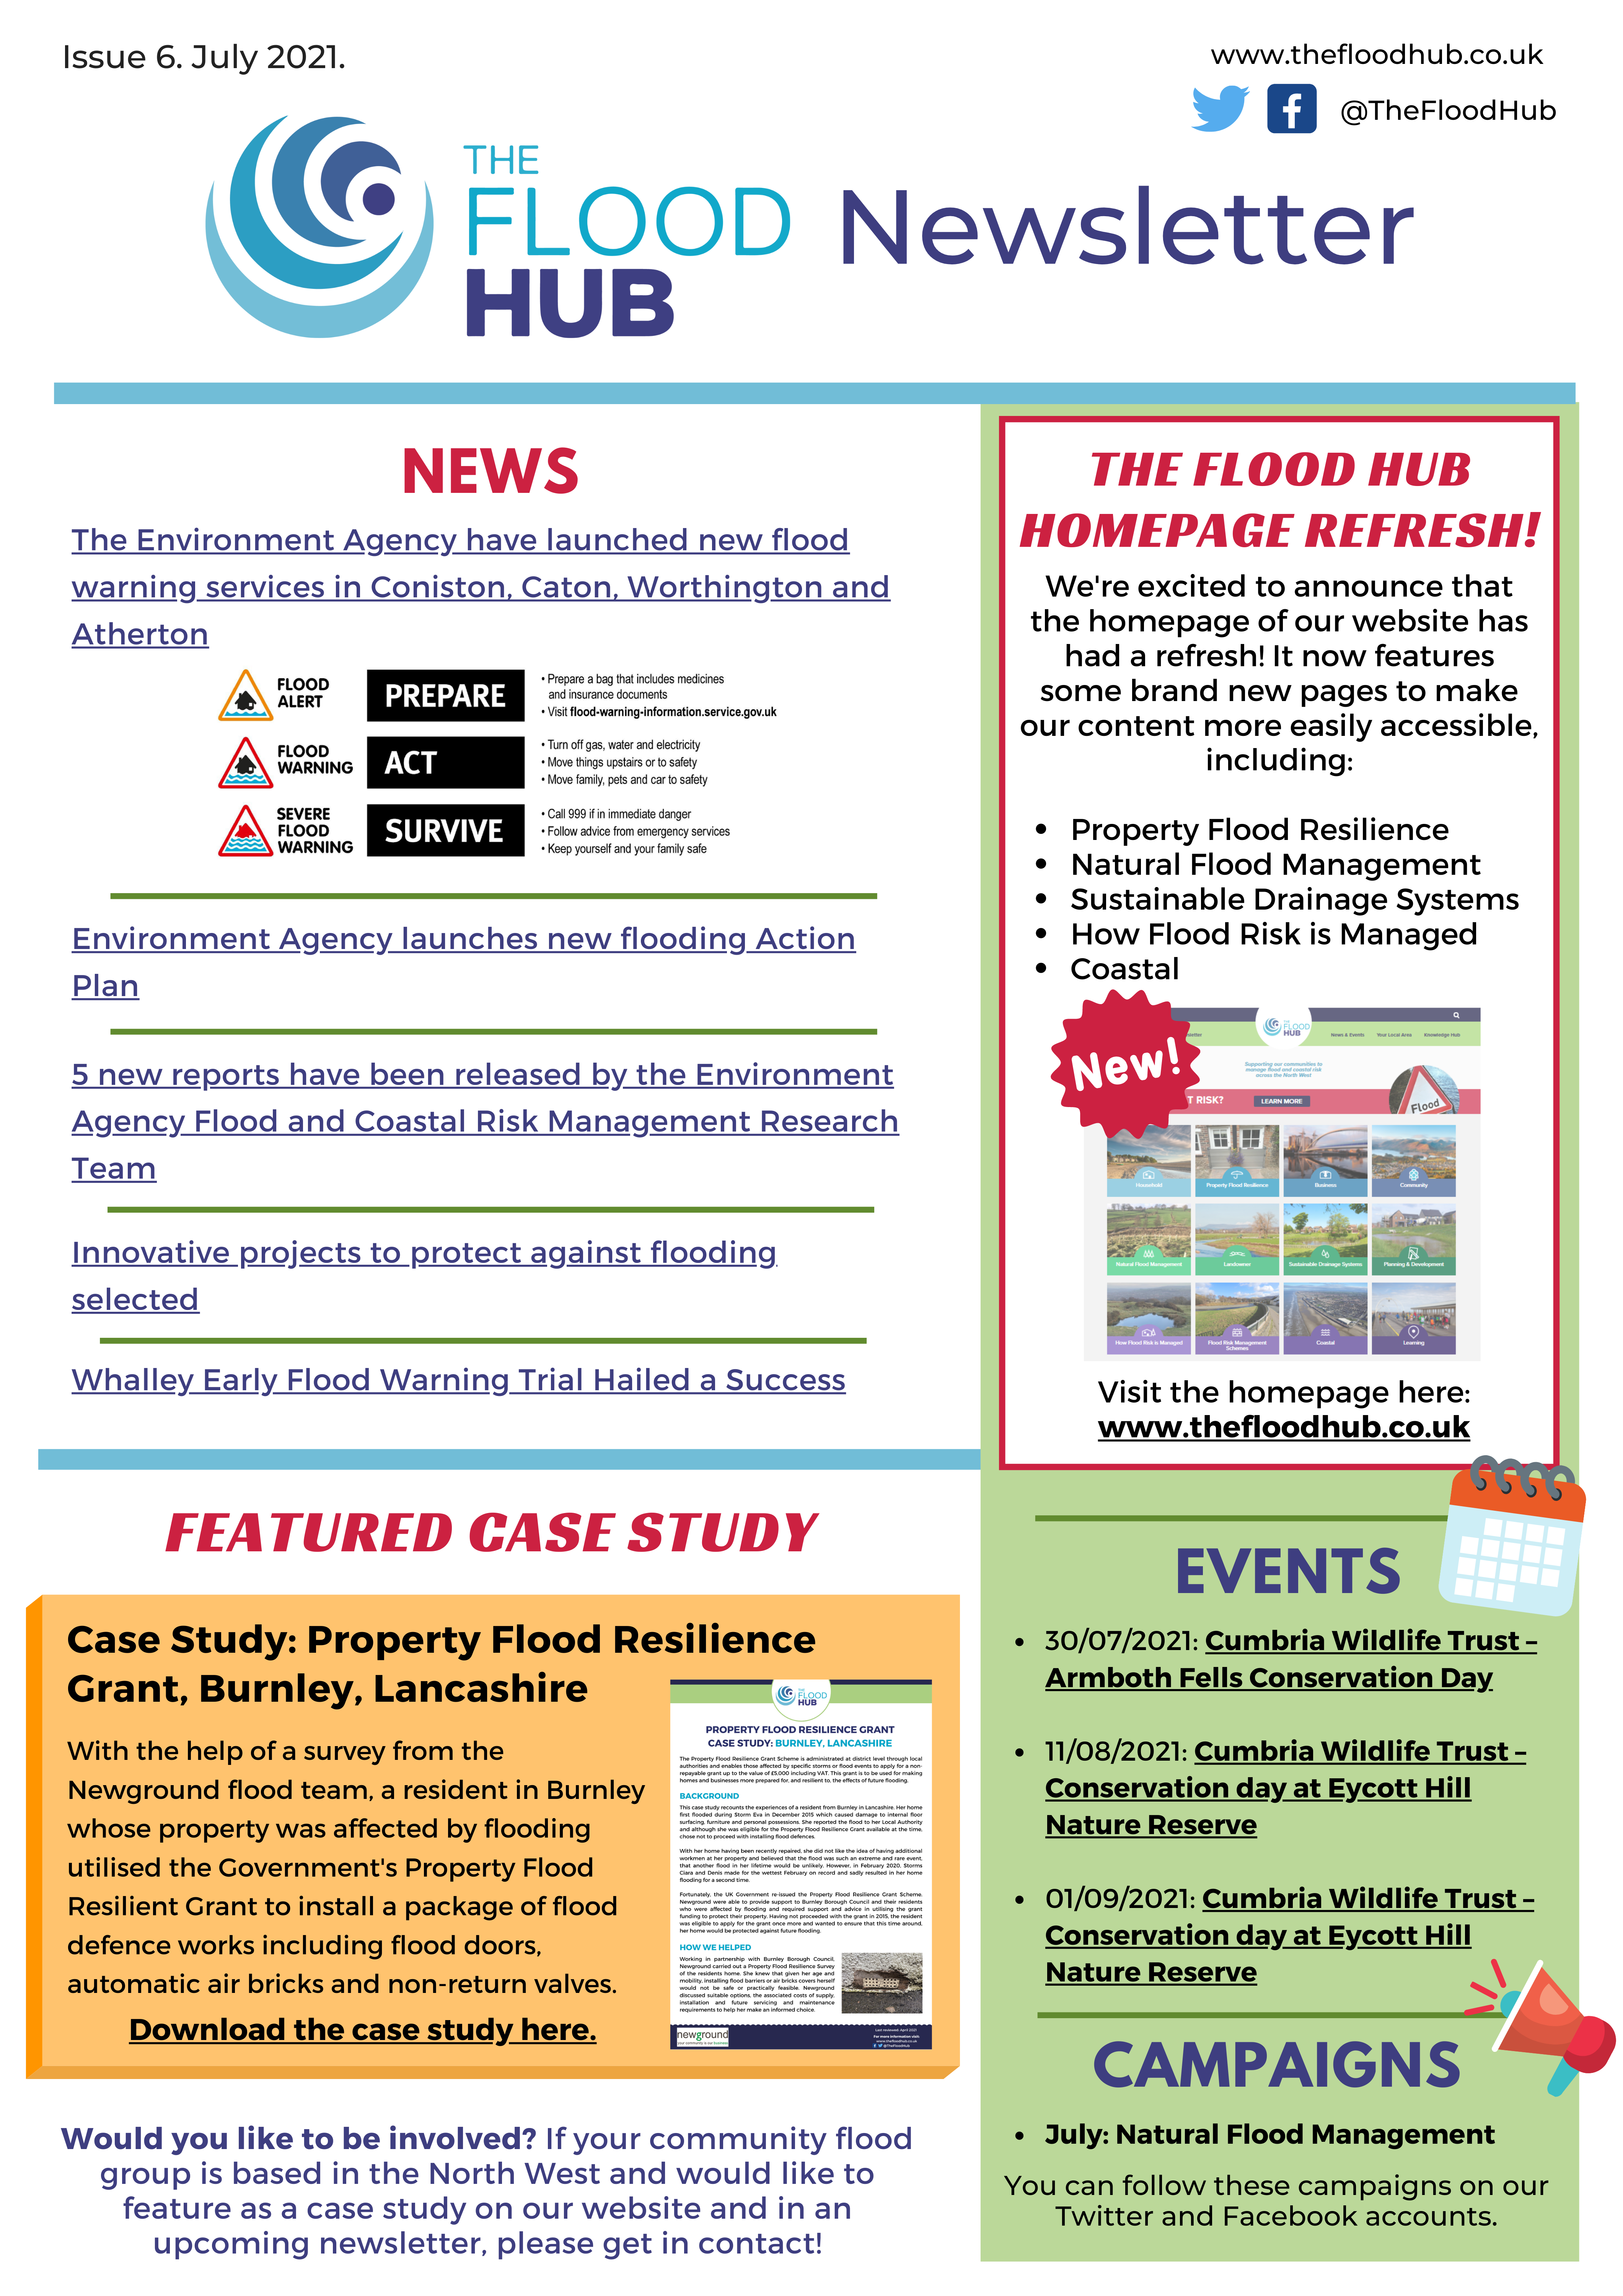 The Flood Hub Newsletter: Issue 6, July 2021